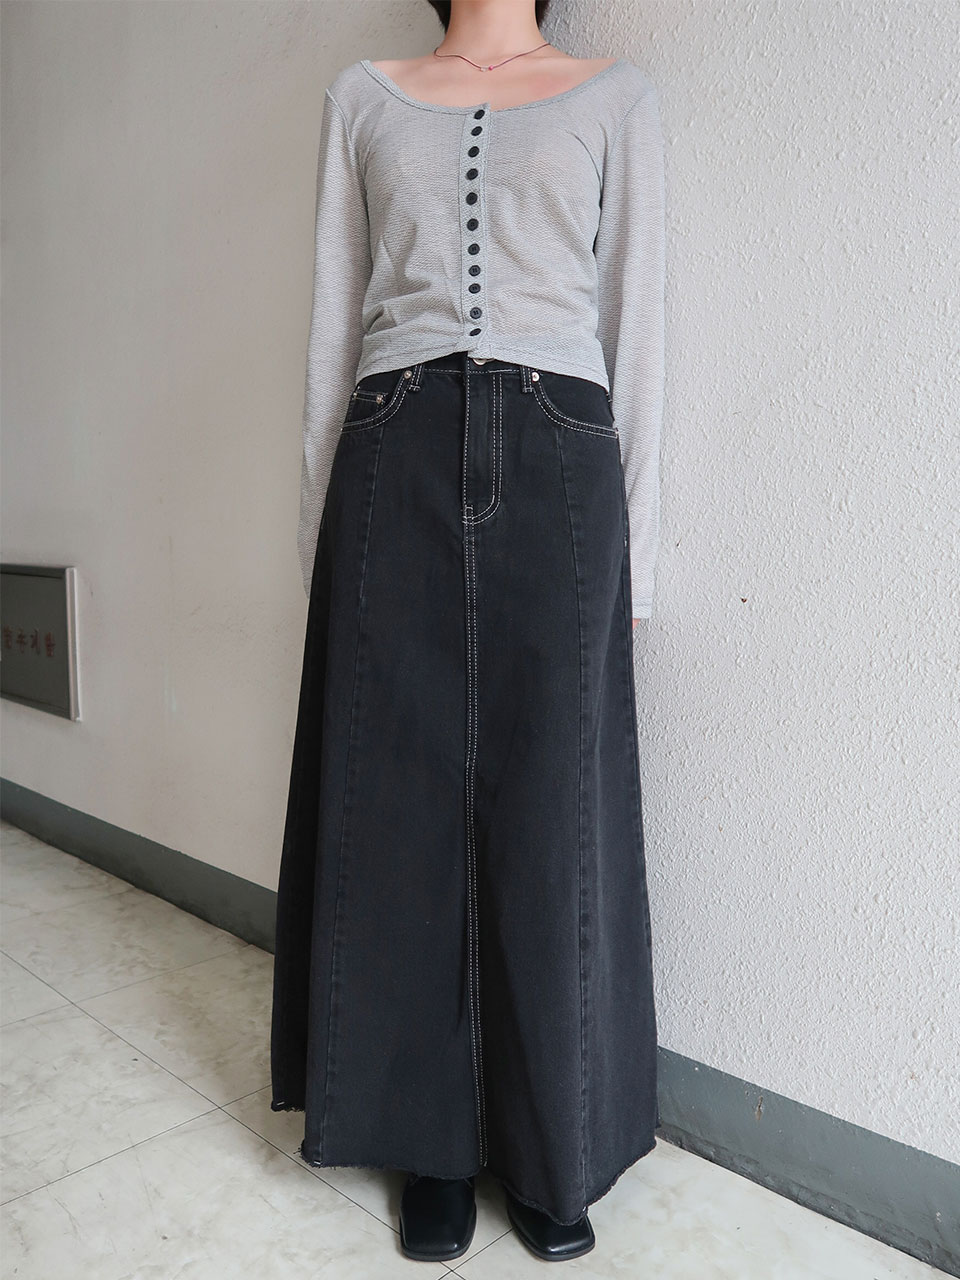 모델 소장♡ panel stitch denim skirt